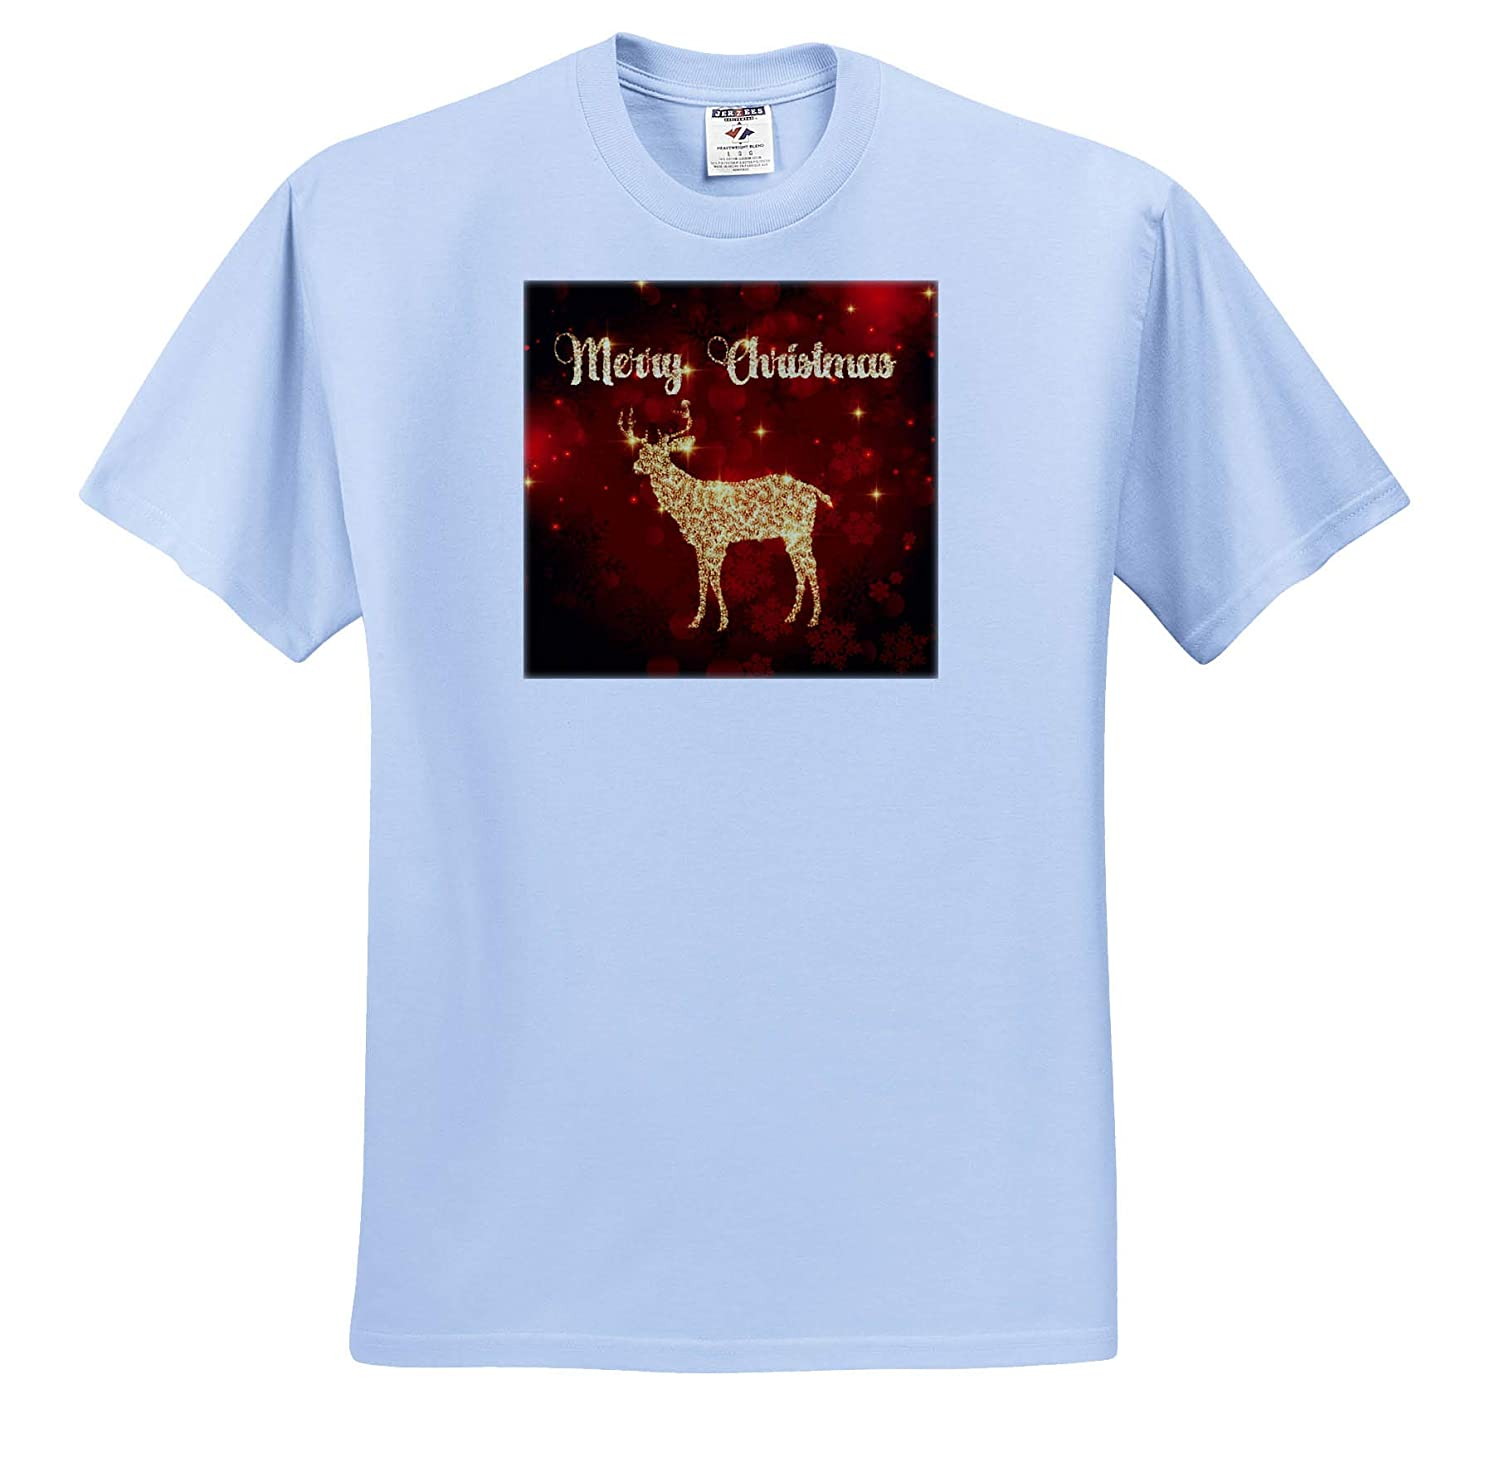 3dRose Sven Herkenrath Christmas Merry Christmas with Red Background and Gold Deer T-Shirts